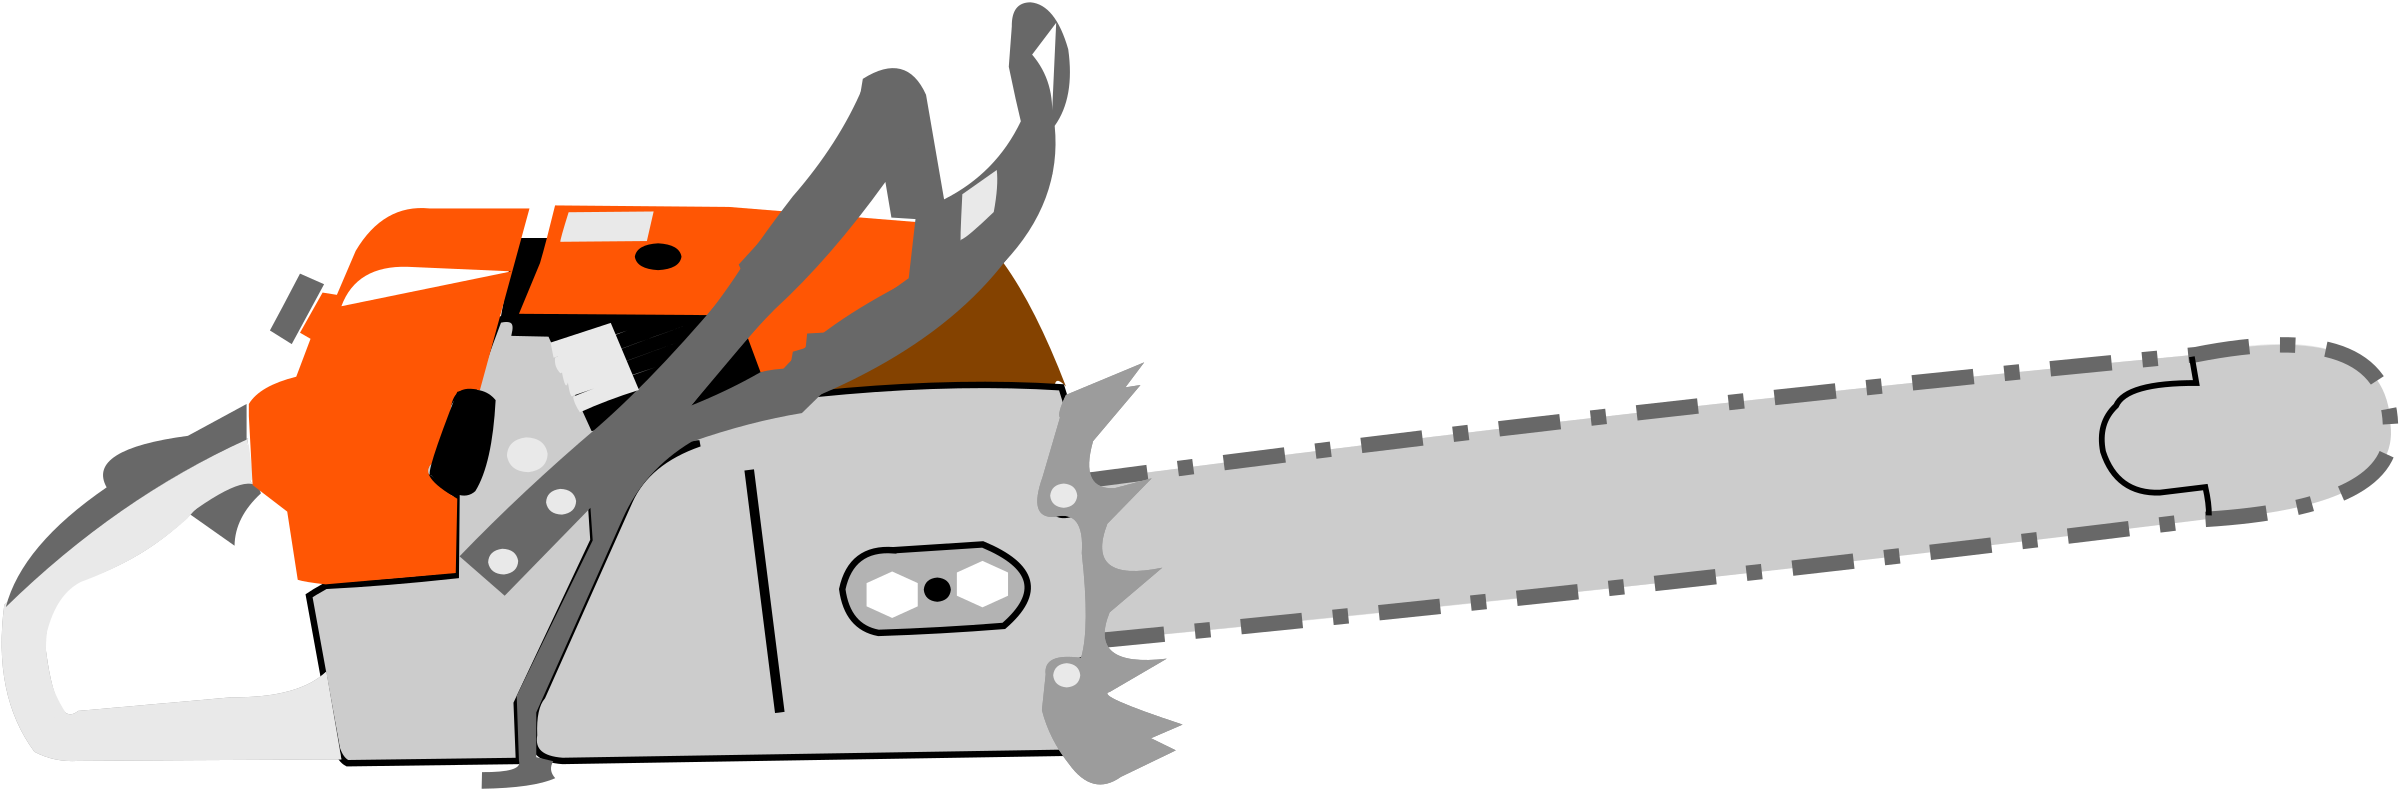 clip free download . Chainsaw clipart